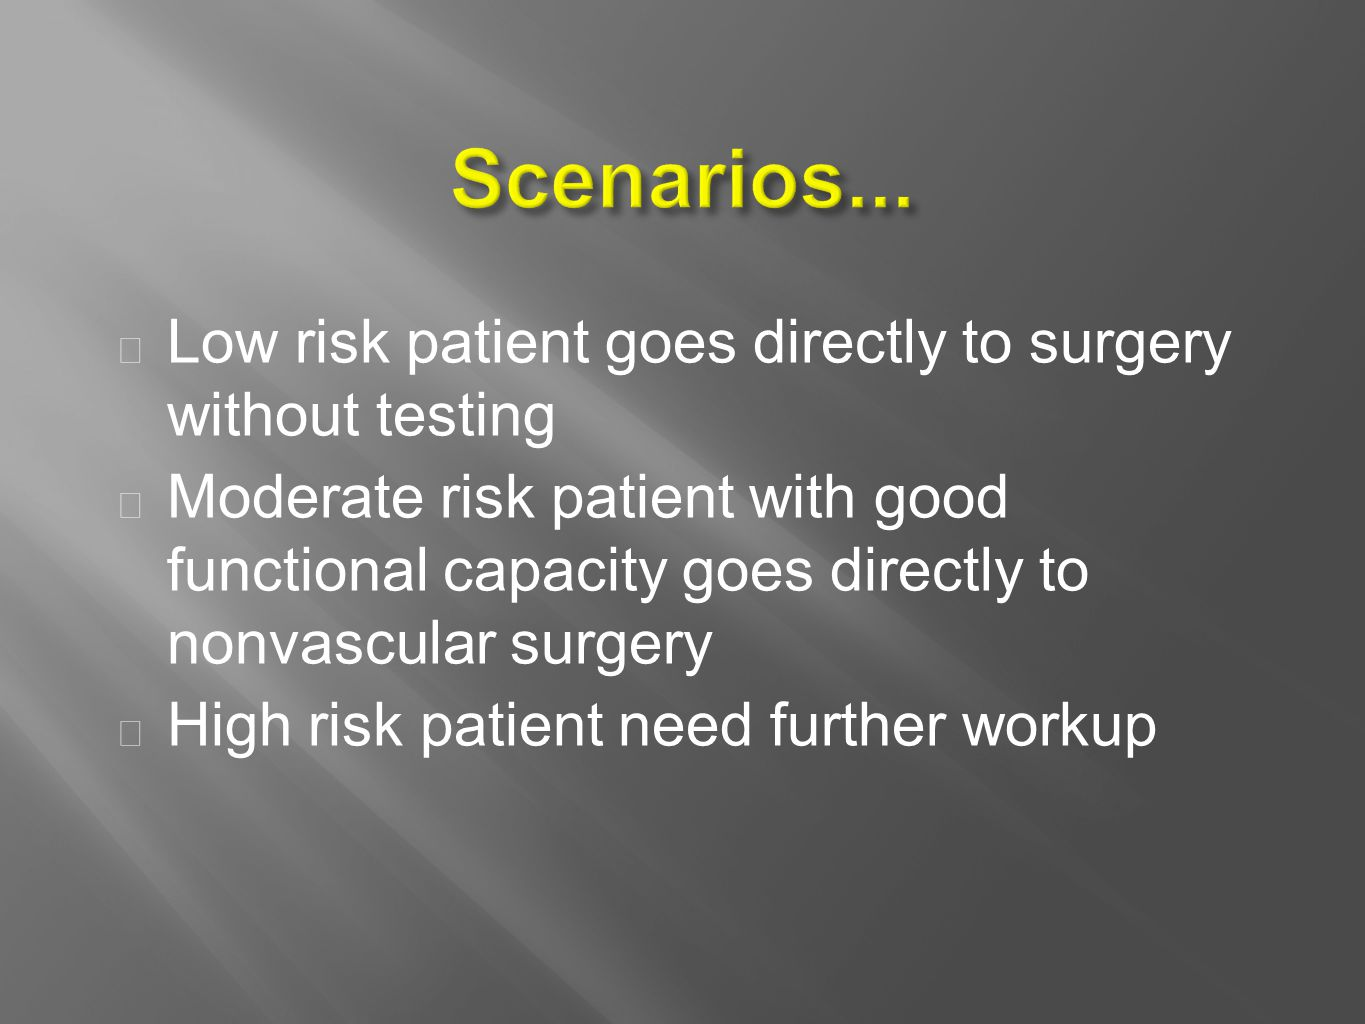  Low risk patient goes directly to surgery without testing  Moderate risk patient with good functional capacity goes directly to nonvascular surgery  High risk patient need further workup